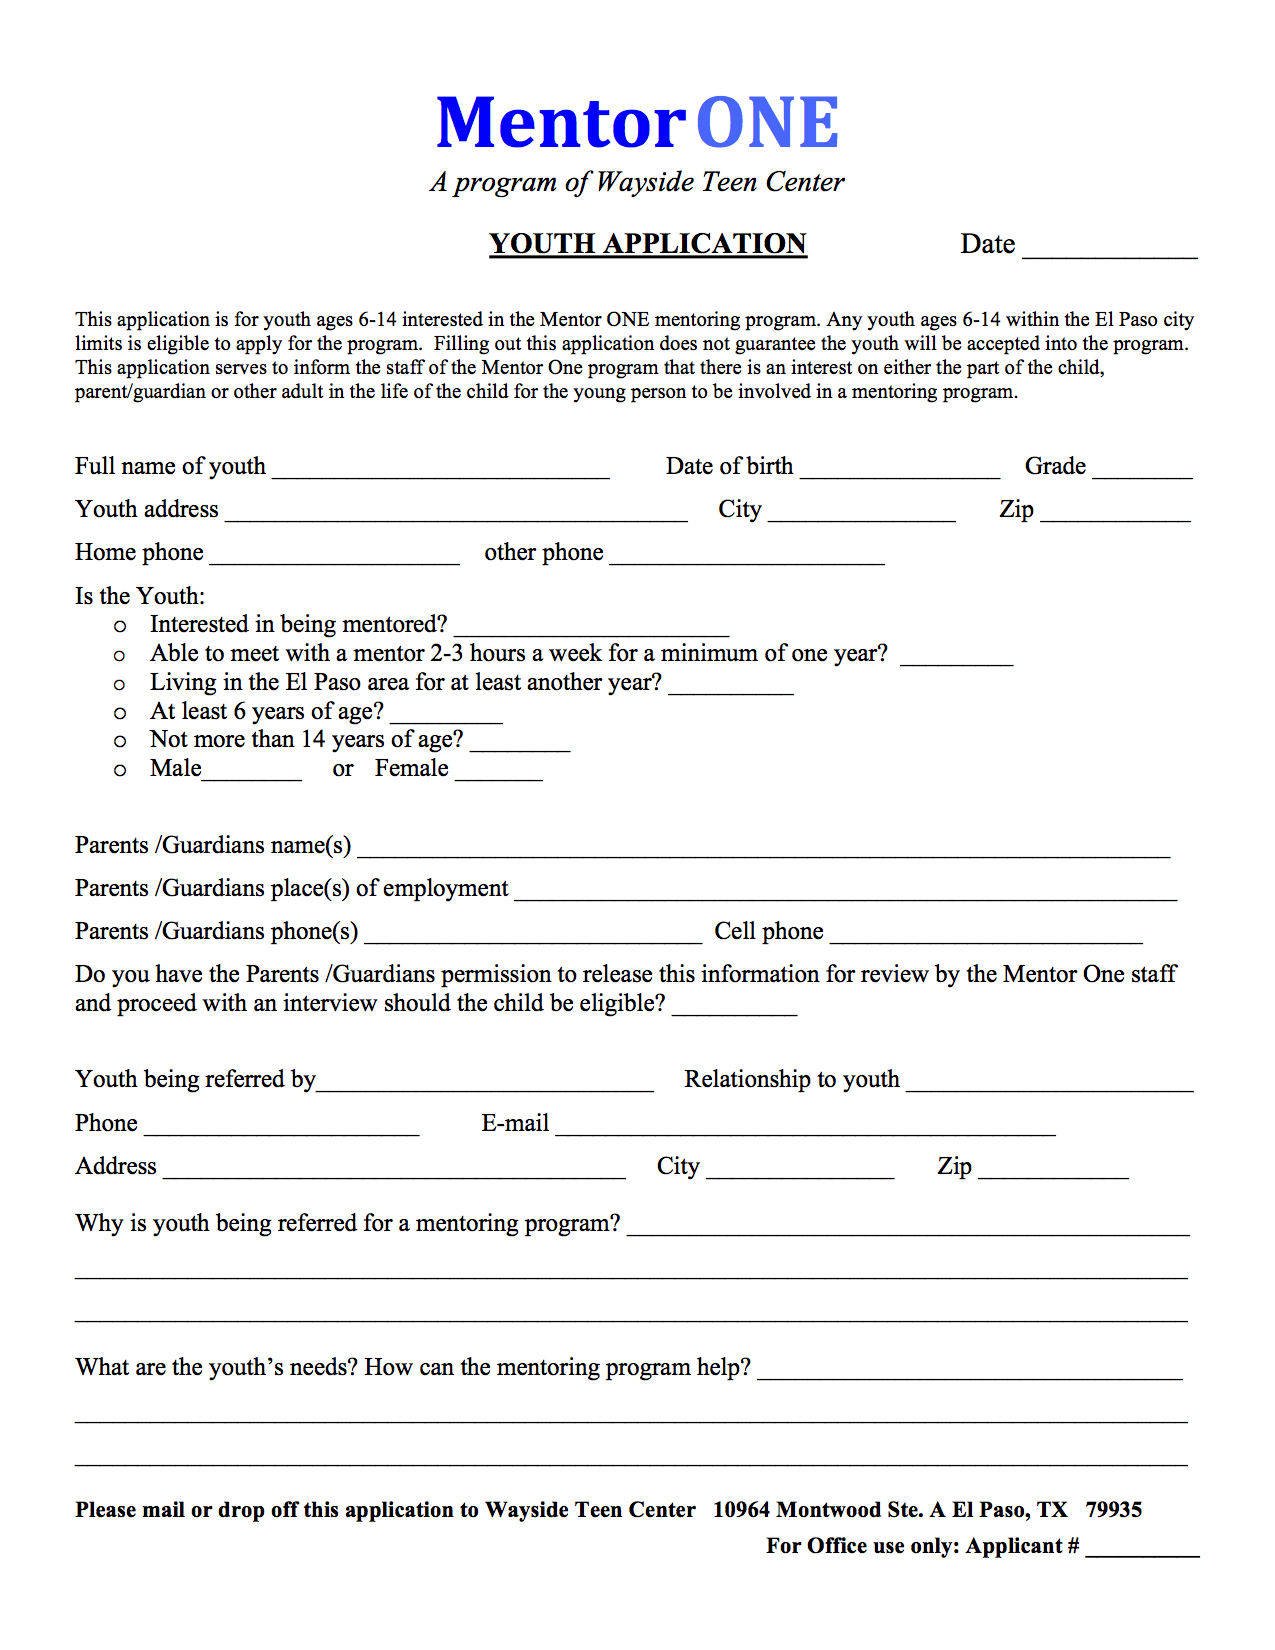 mentoring application templates - waysideteencenter mentor one